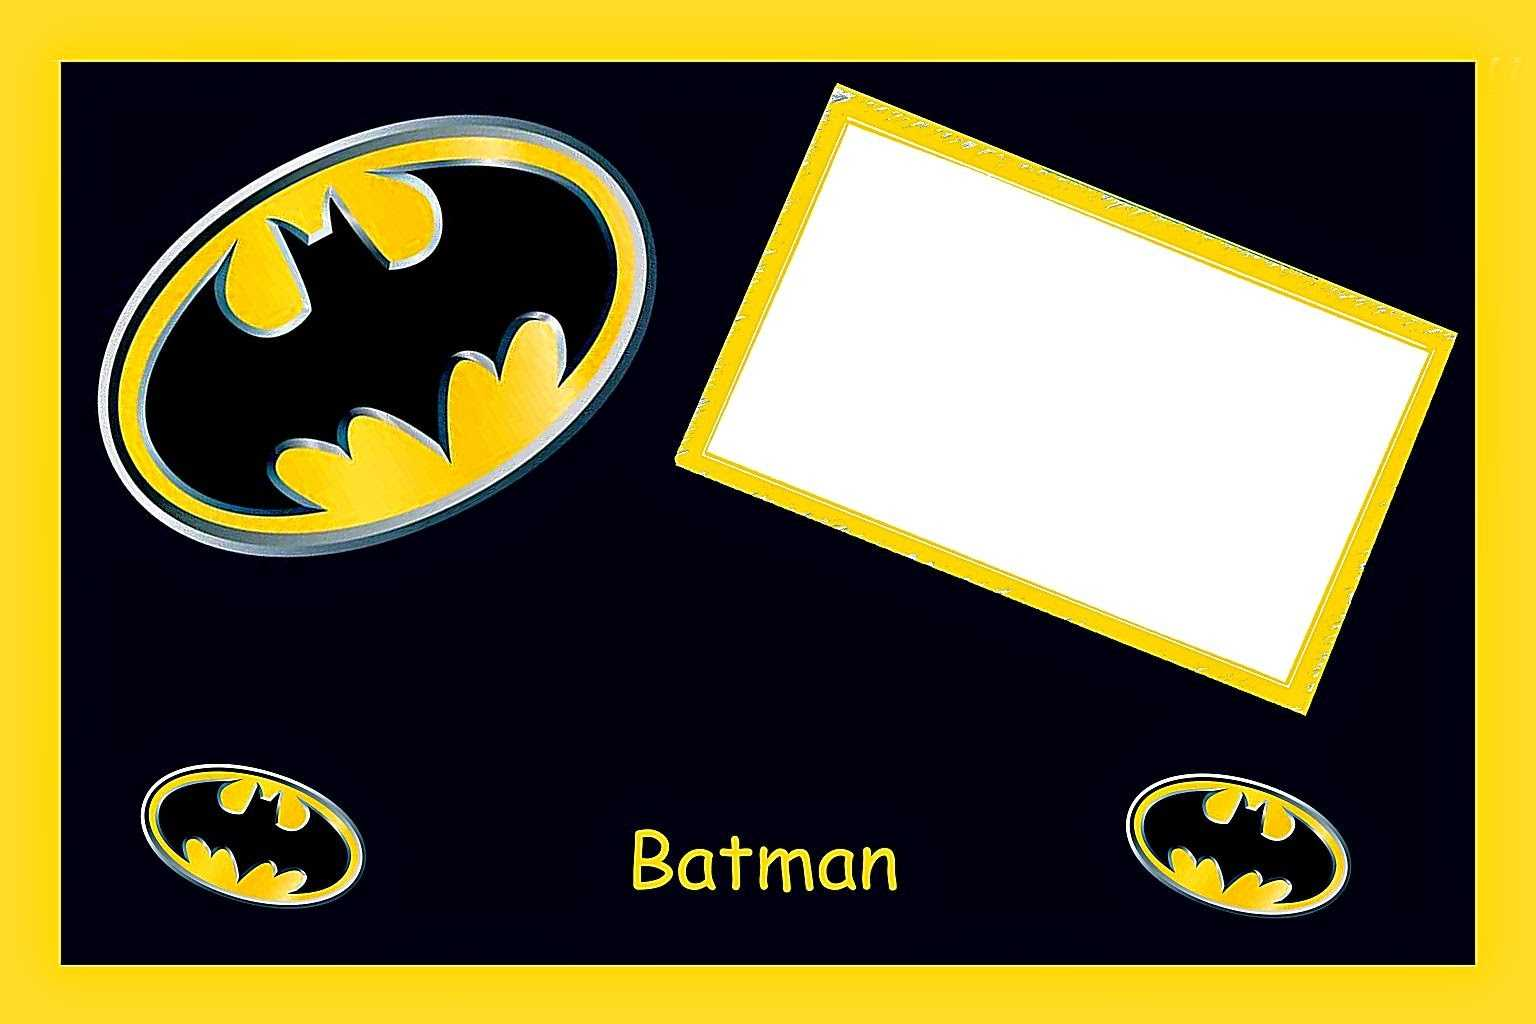 Batman Birthday: Free Printable Cards Or Invitations. - Oh Intended For Batman Birthday Card Template